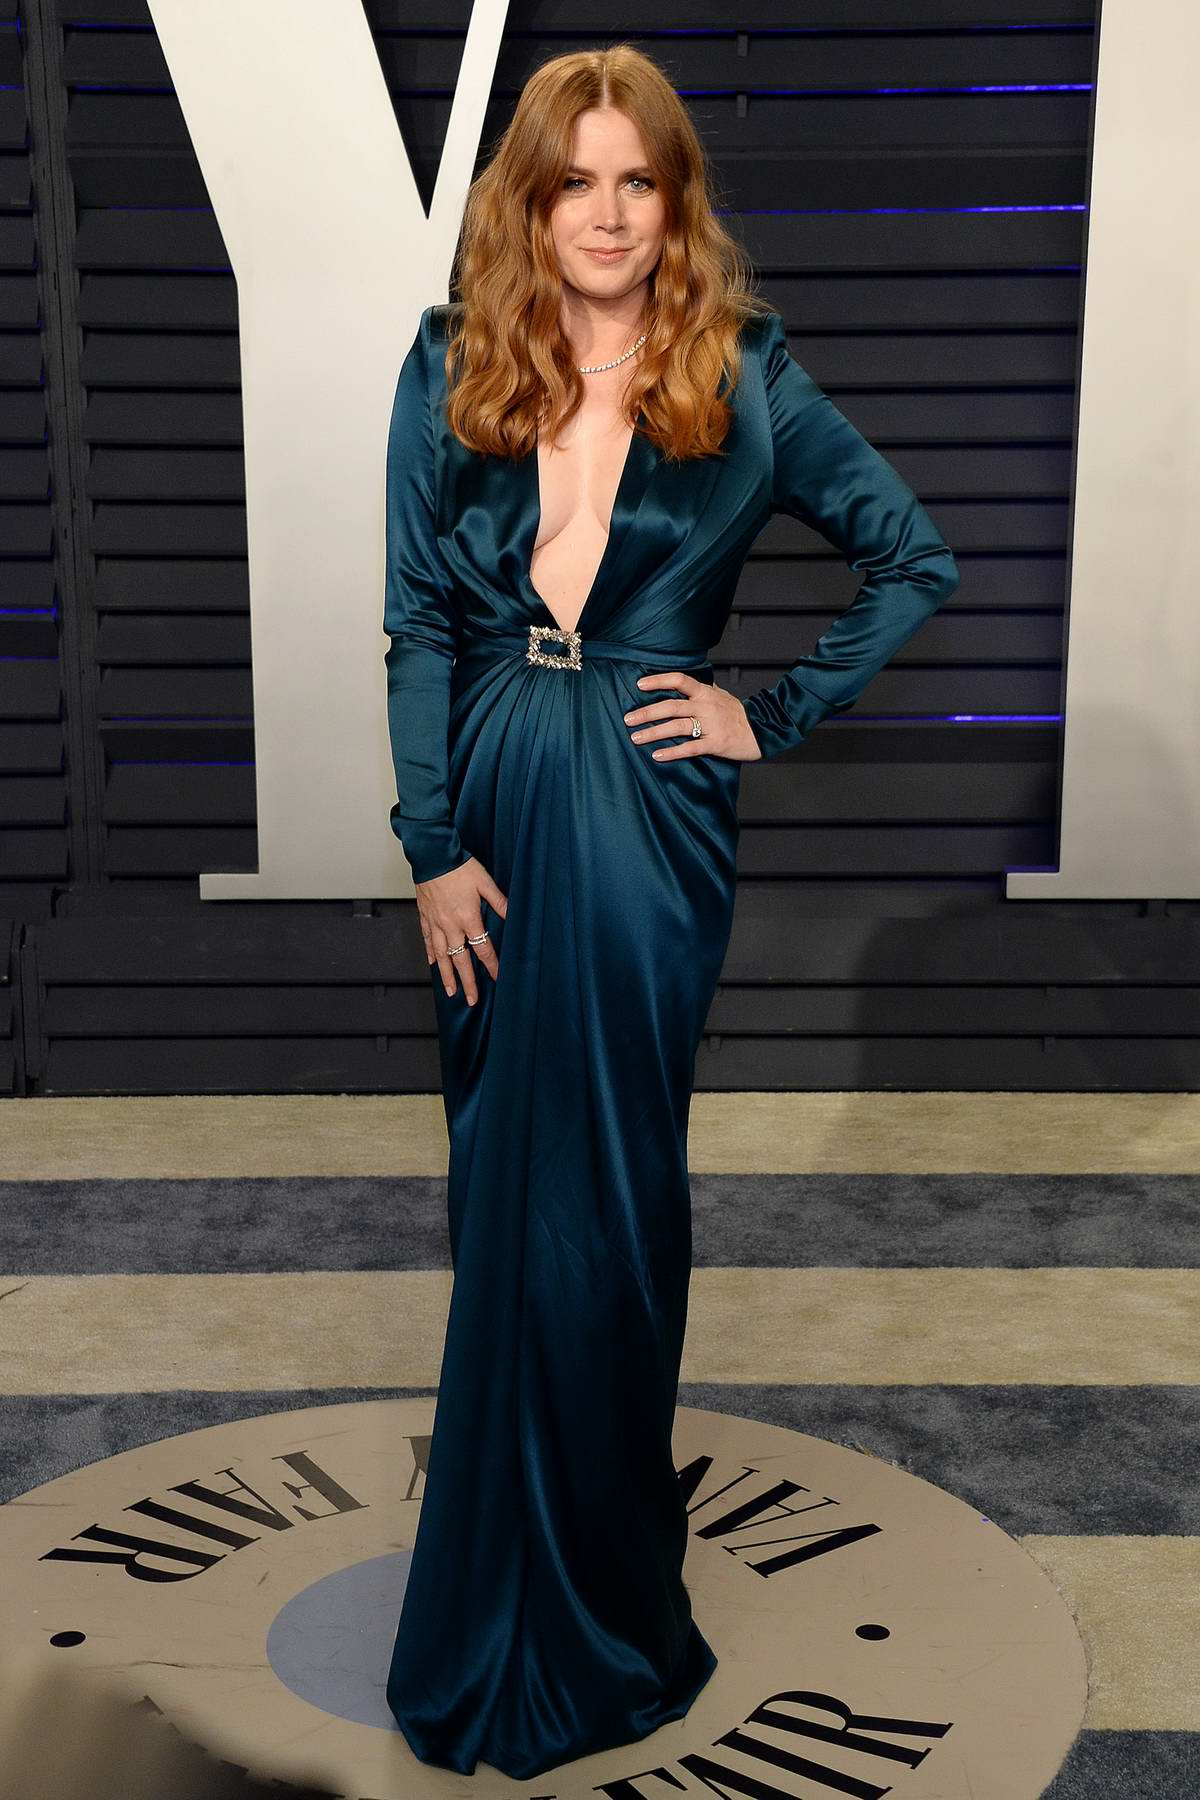 Amy Adams attends the Vanity Fair Oscar Party at Wallis Annenberg Center for the Performing Arts in Beverly Hills, California